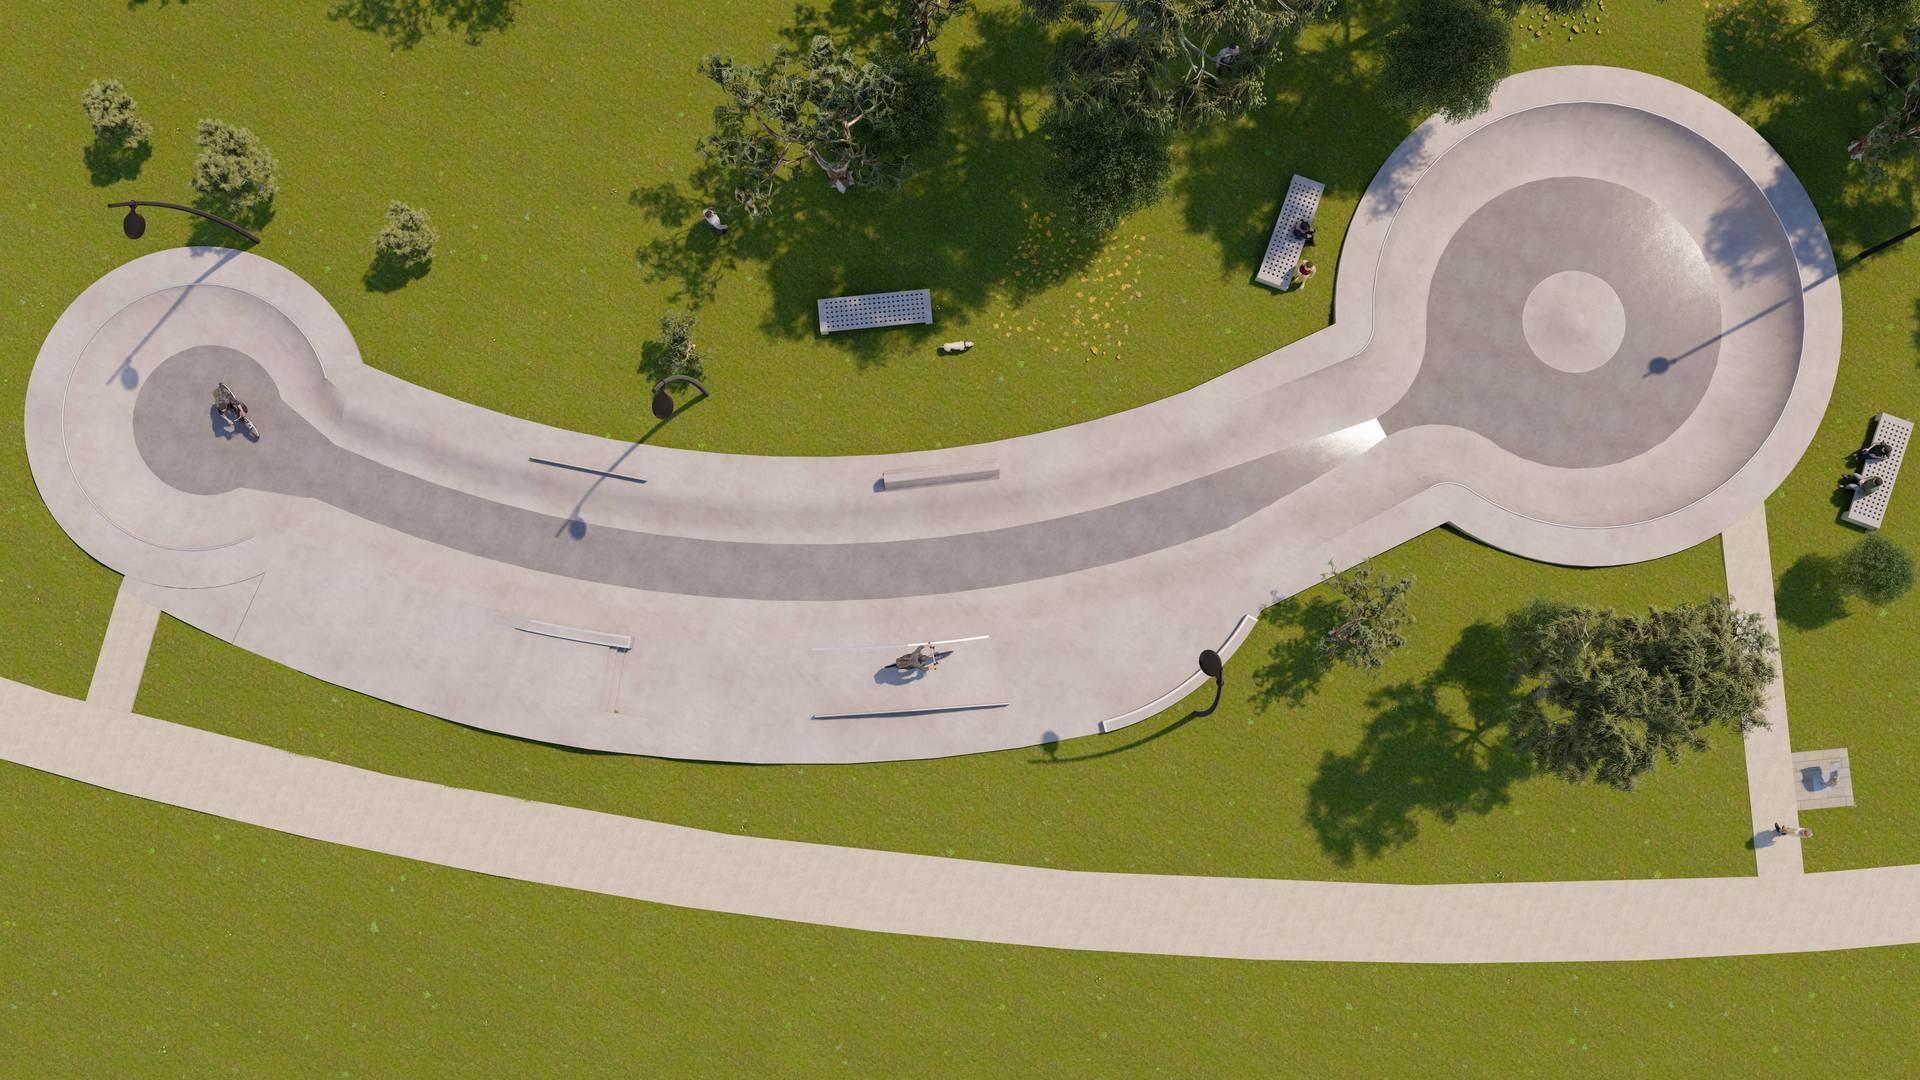 Aussie council mocked for X-rated skate park design